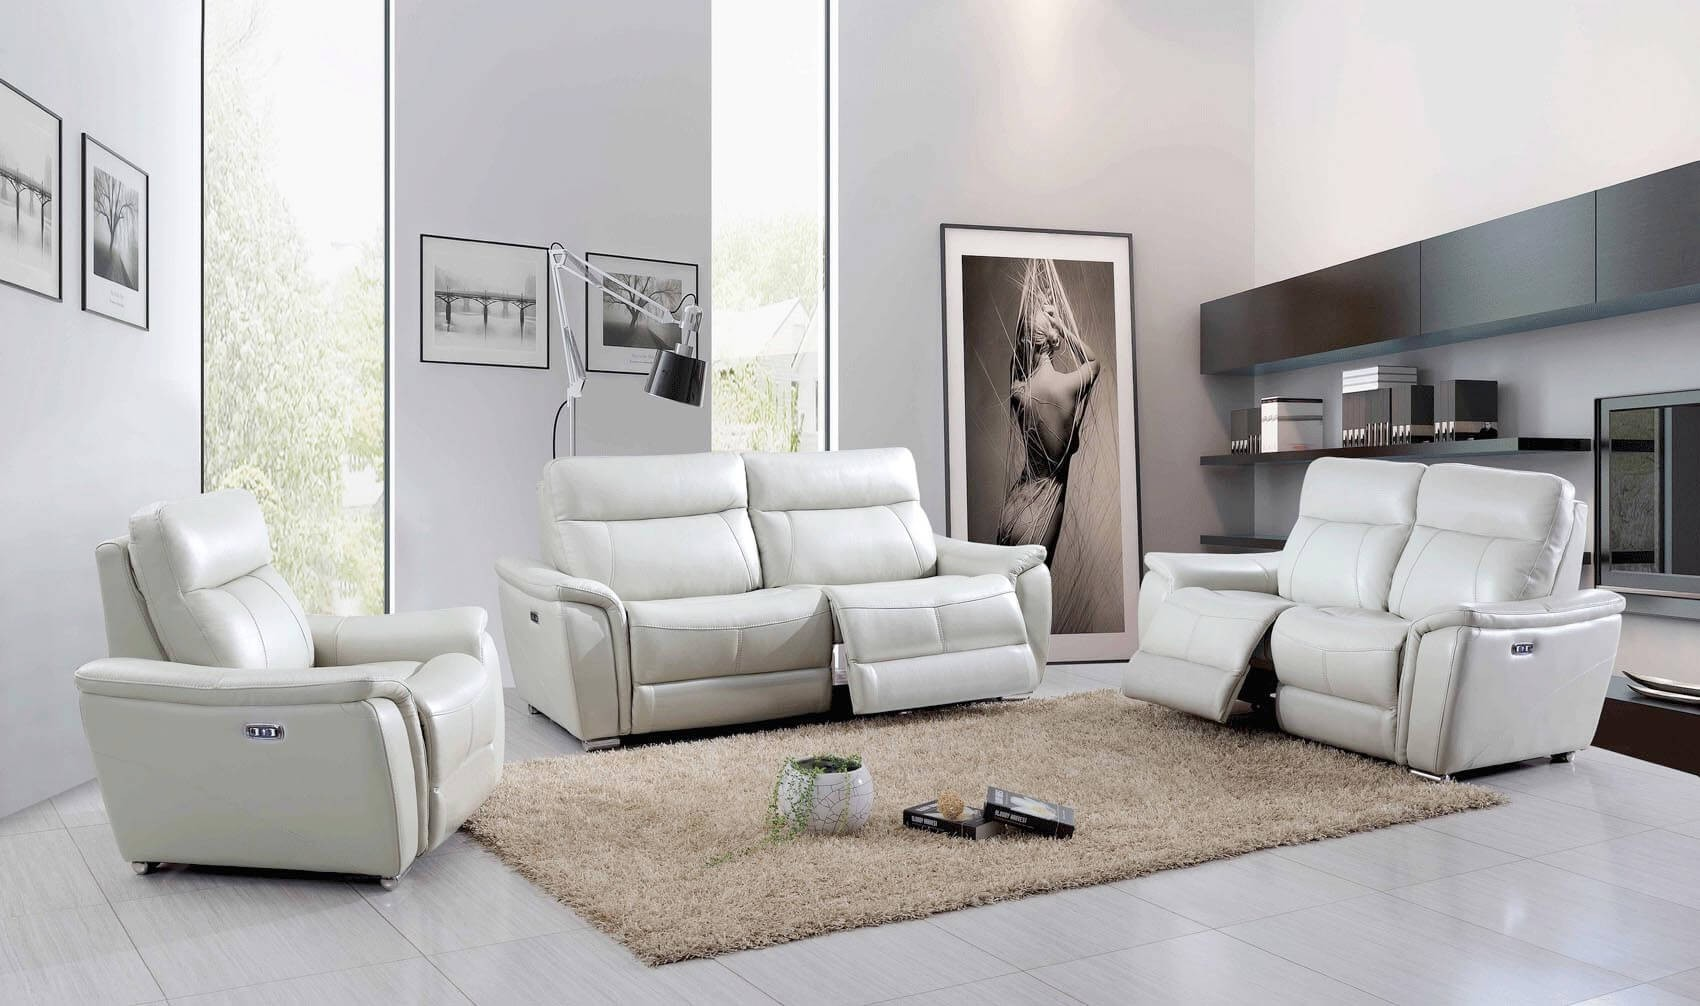 Tremendous 1705 Leather Eco Leather Living Room Set W Recliner Home Interior And Landscaping Spoatsignezvosmurscom